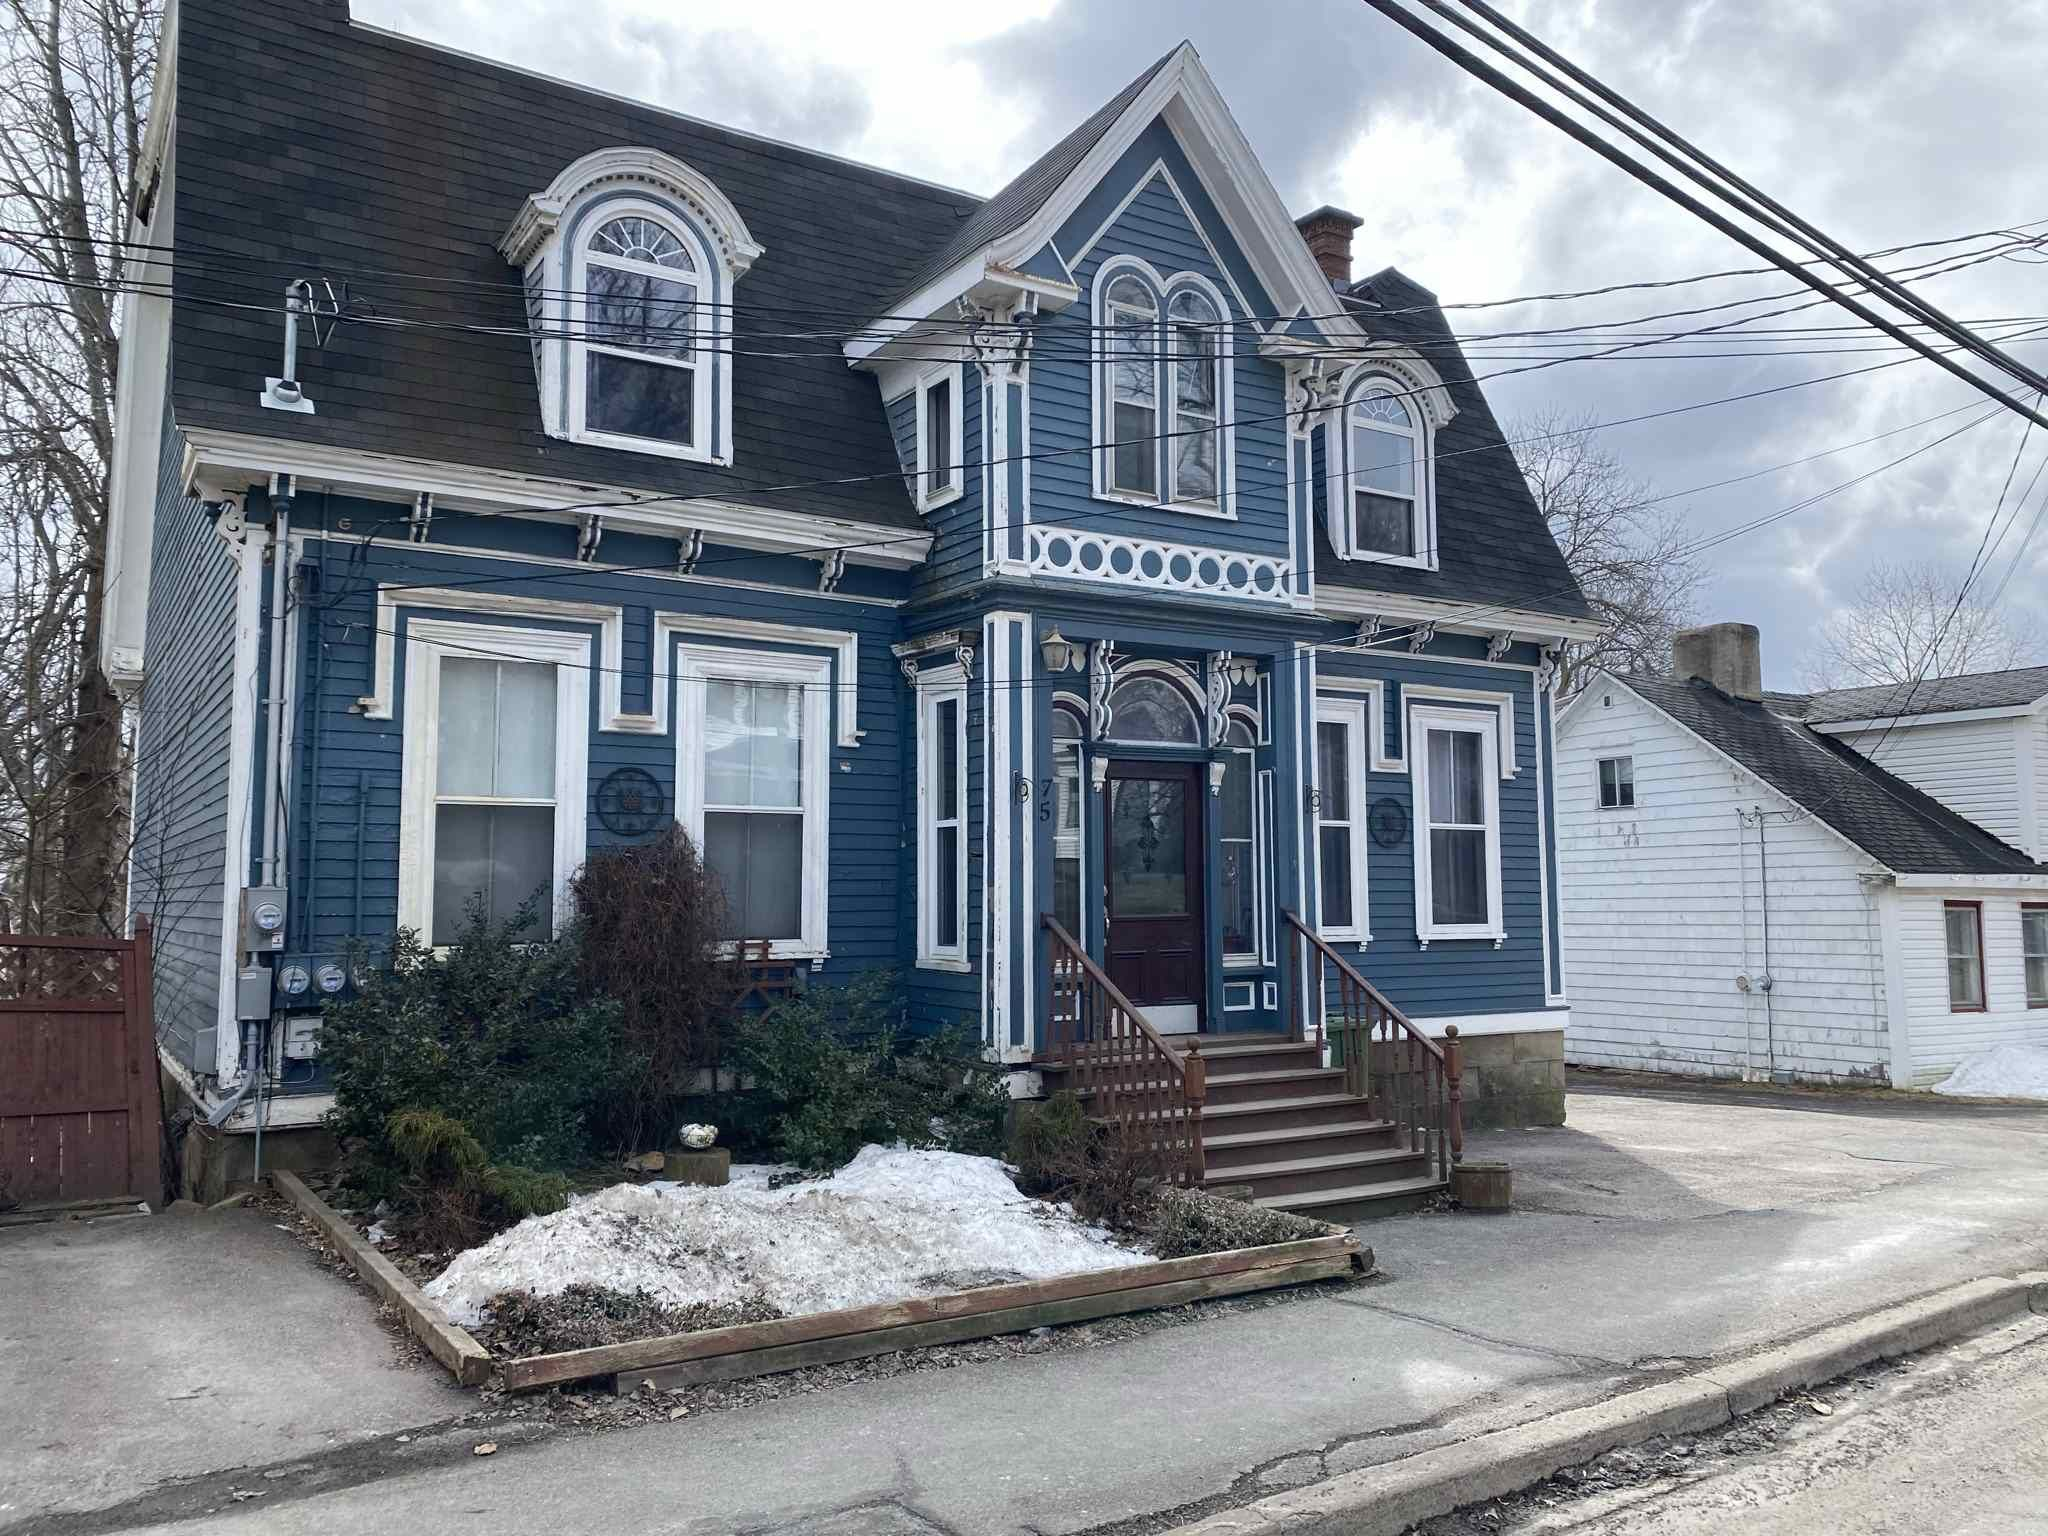 Main Photo: 75 Denoon Street in Pictou: 107-Trenton,Westville,Pictou Residential for sale (Northern Region)  : MLS®# 202105829